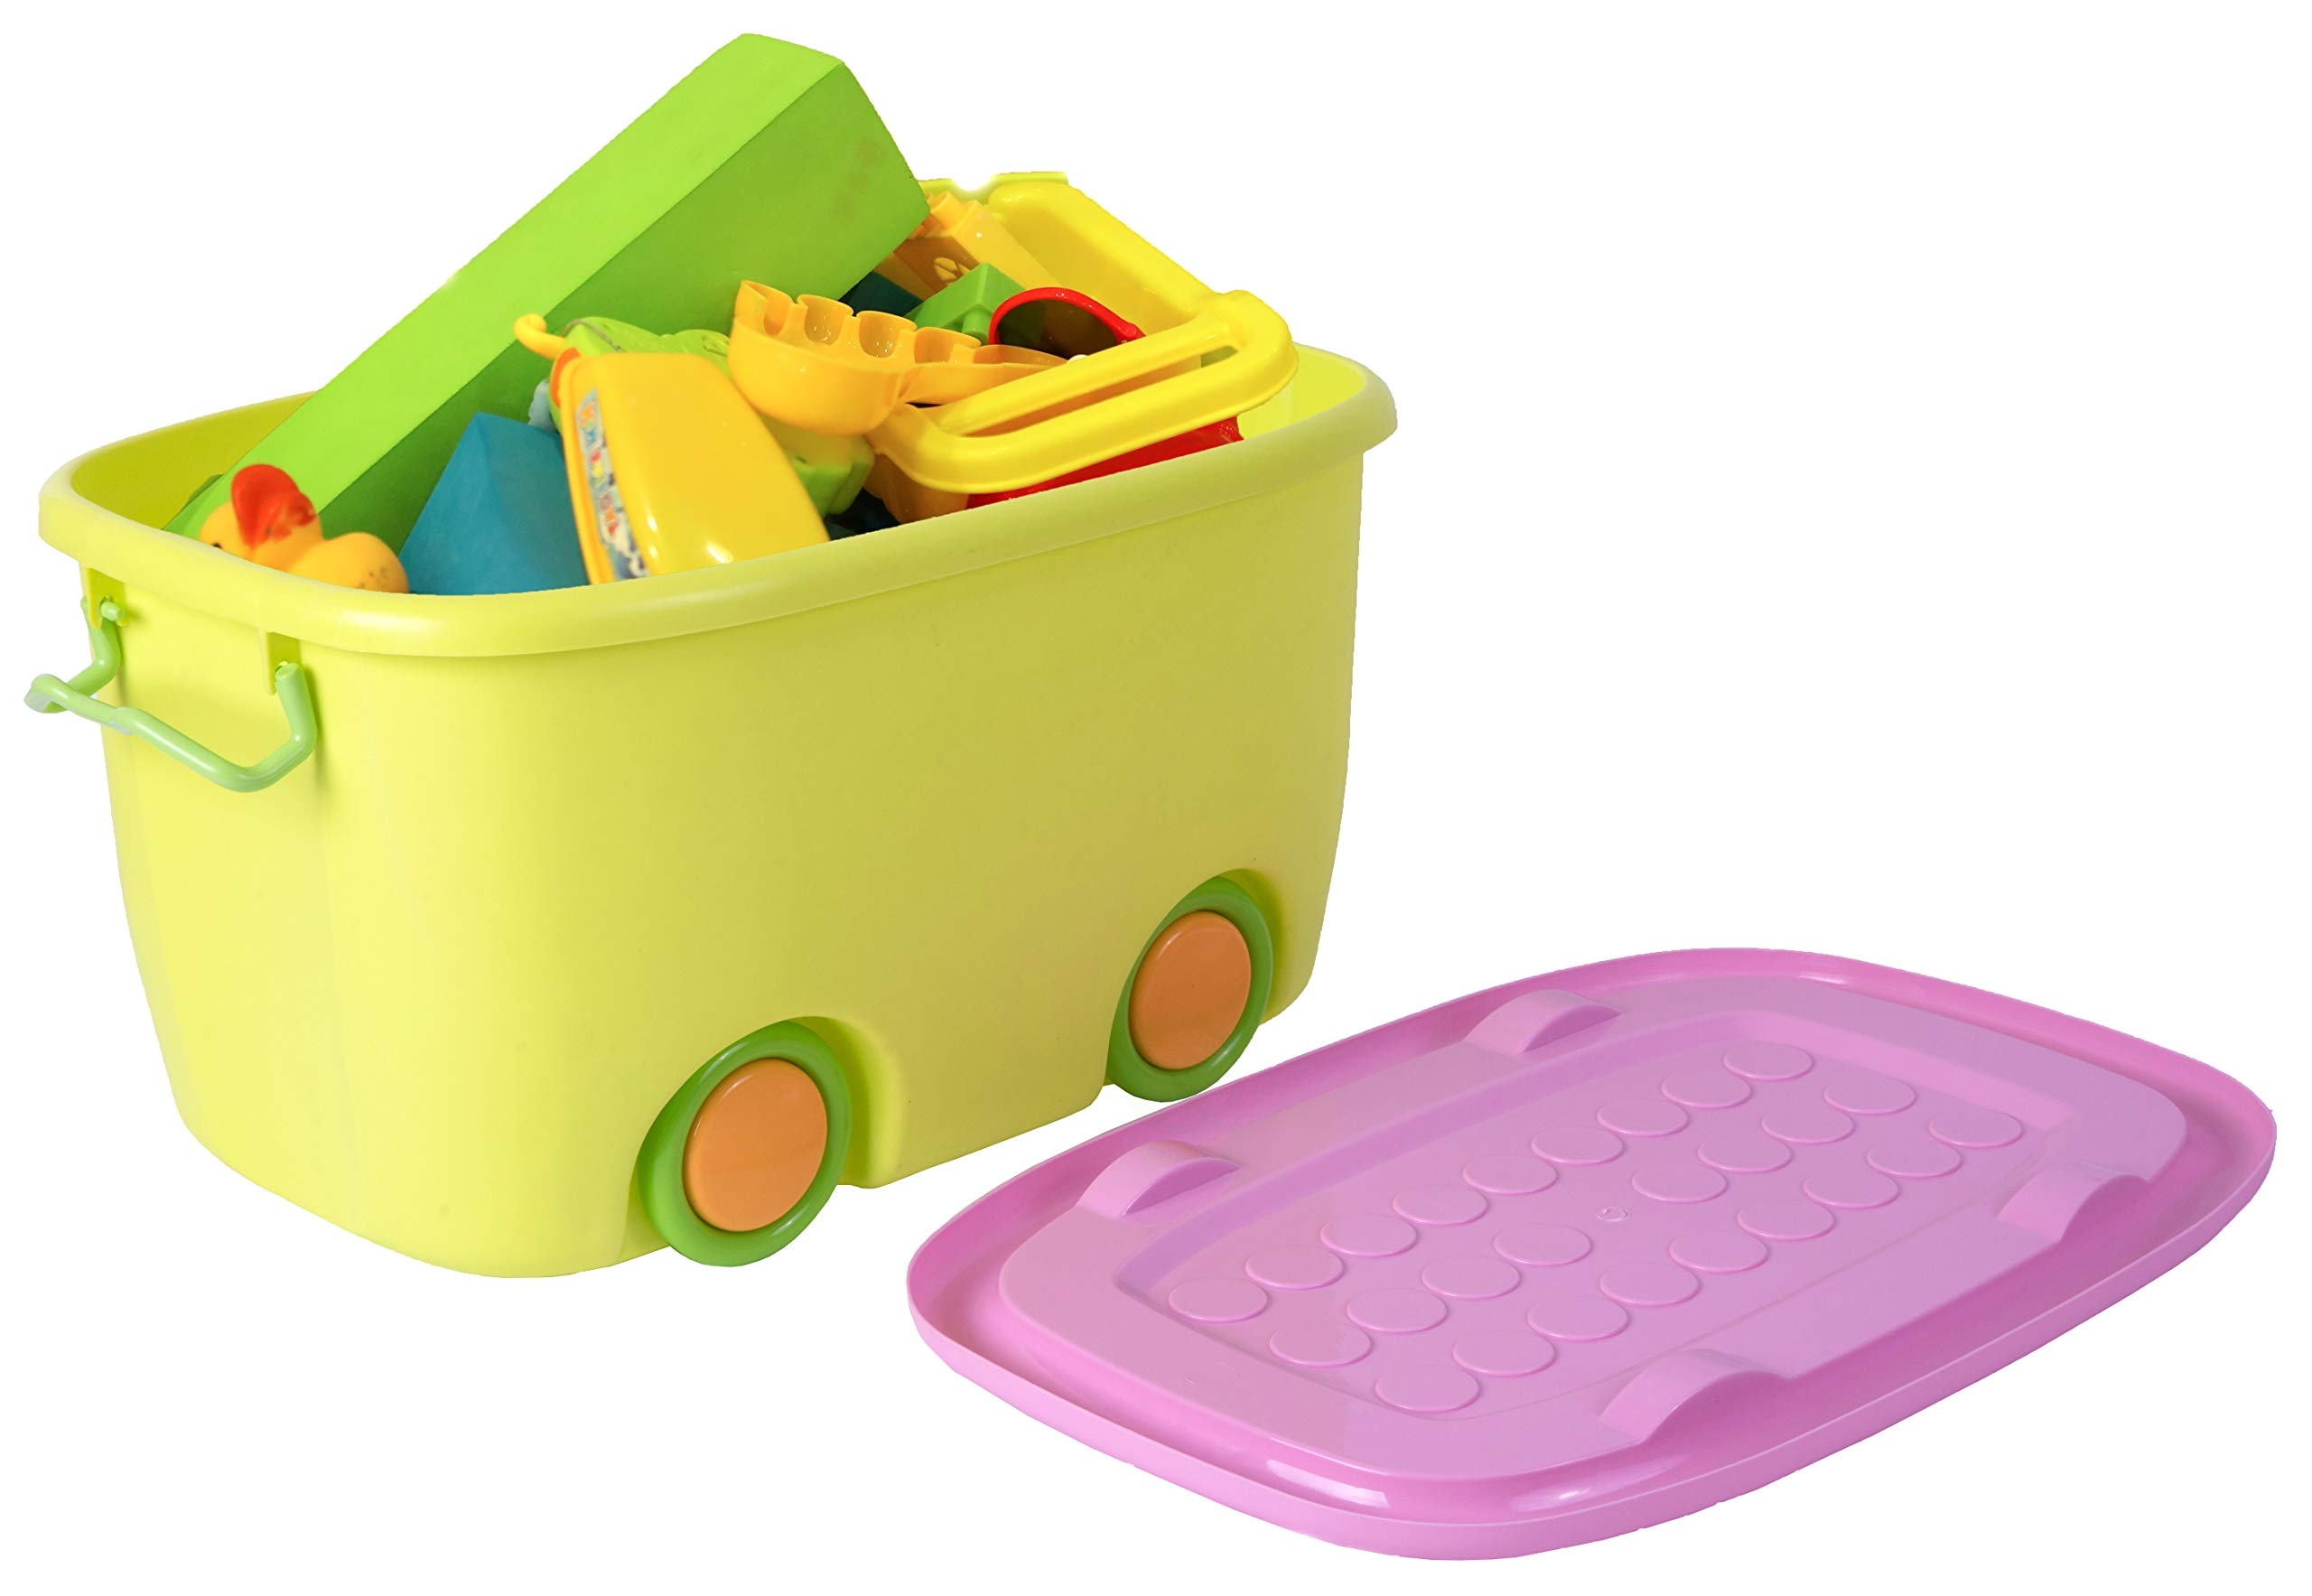 Stackable Toy Storage Box with Wheels (Small Yellow)